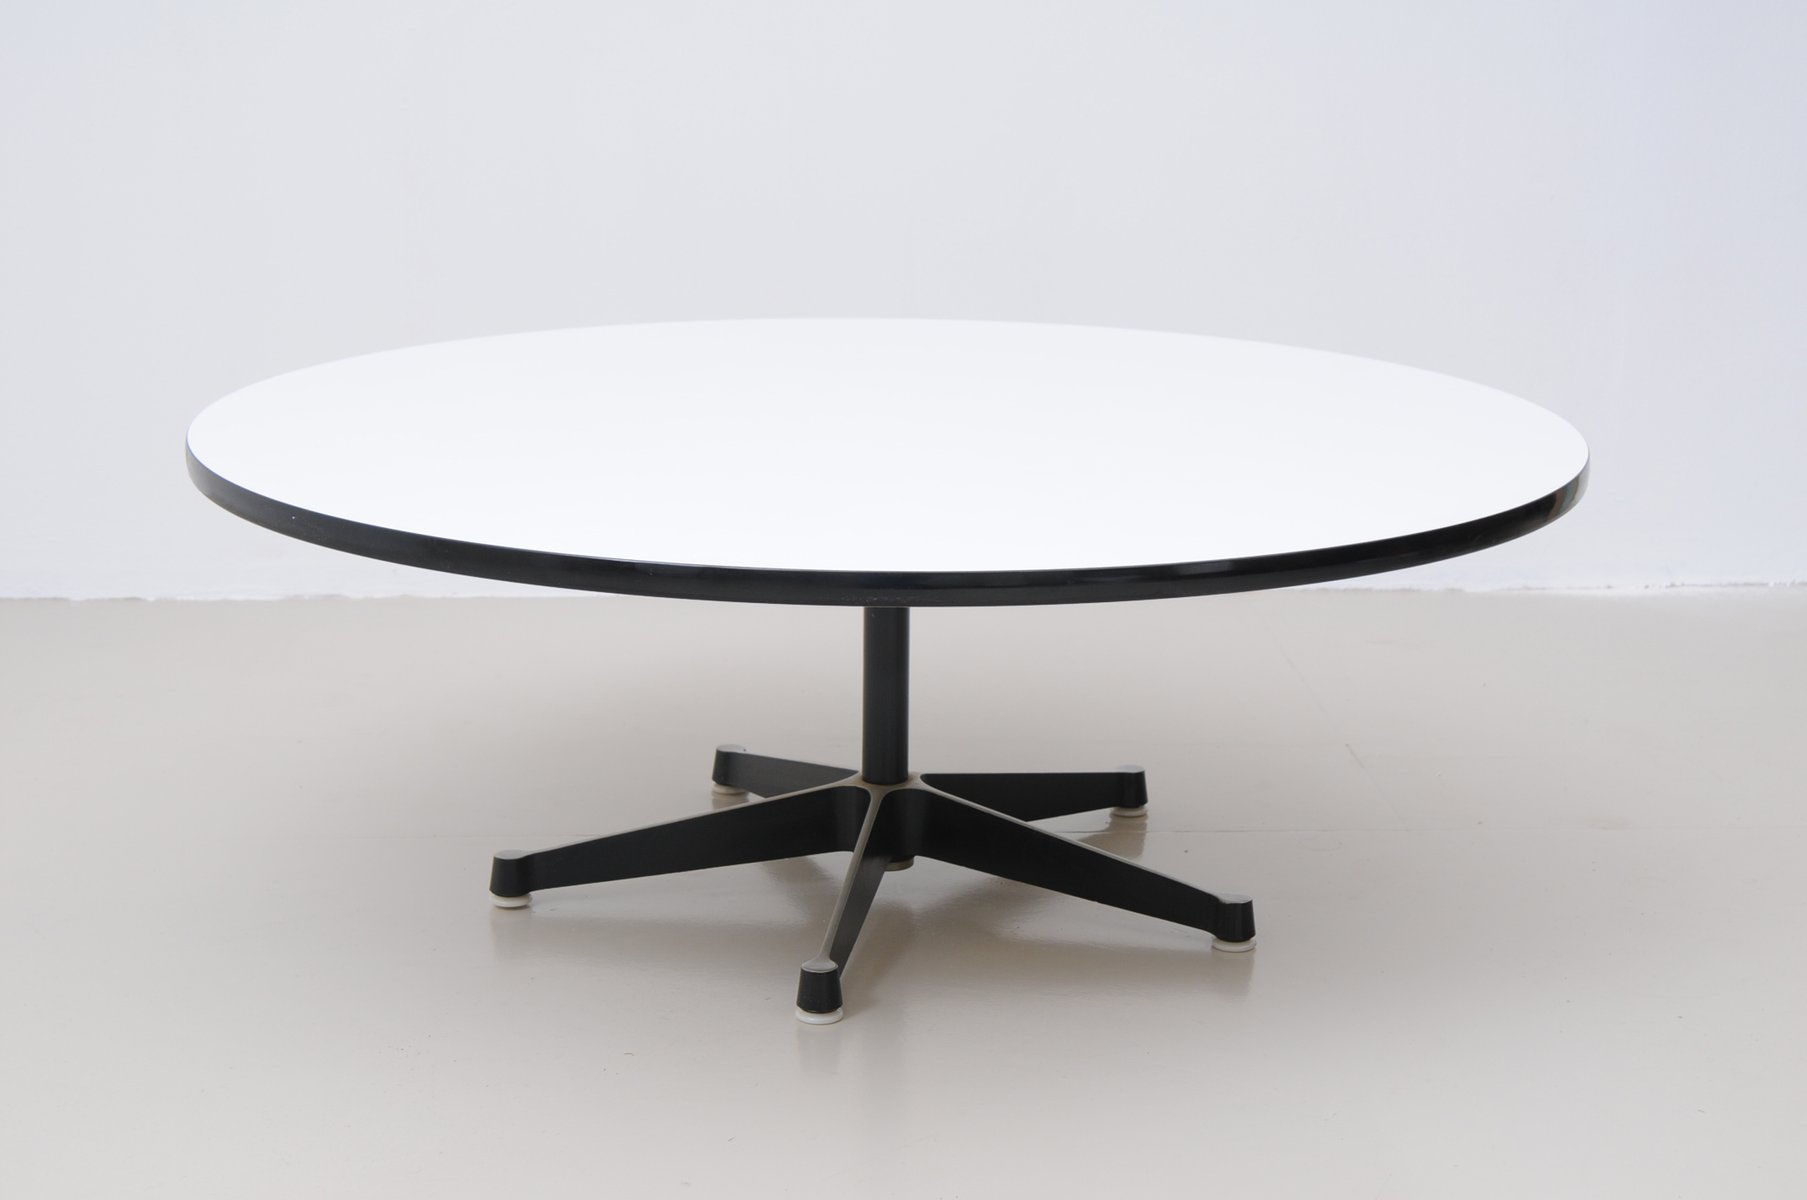 Coffee table by charles eames for herman miller 1950s for for Eames style coffee table